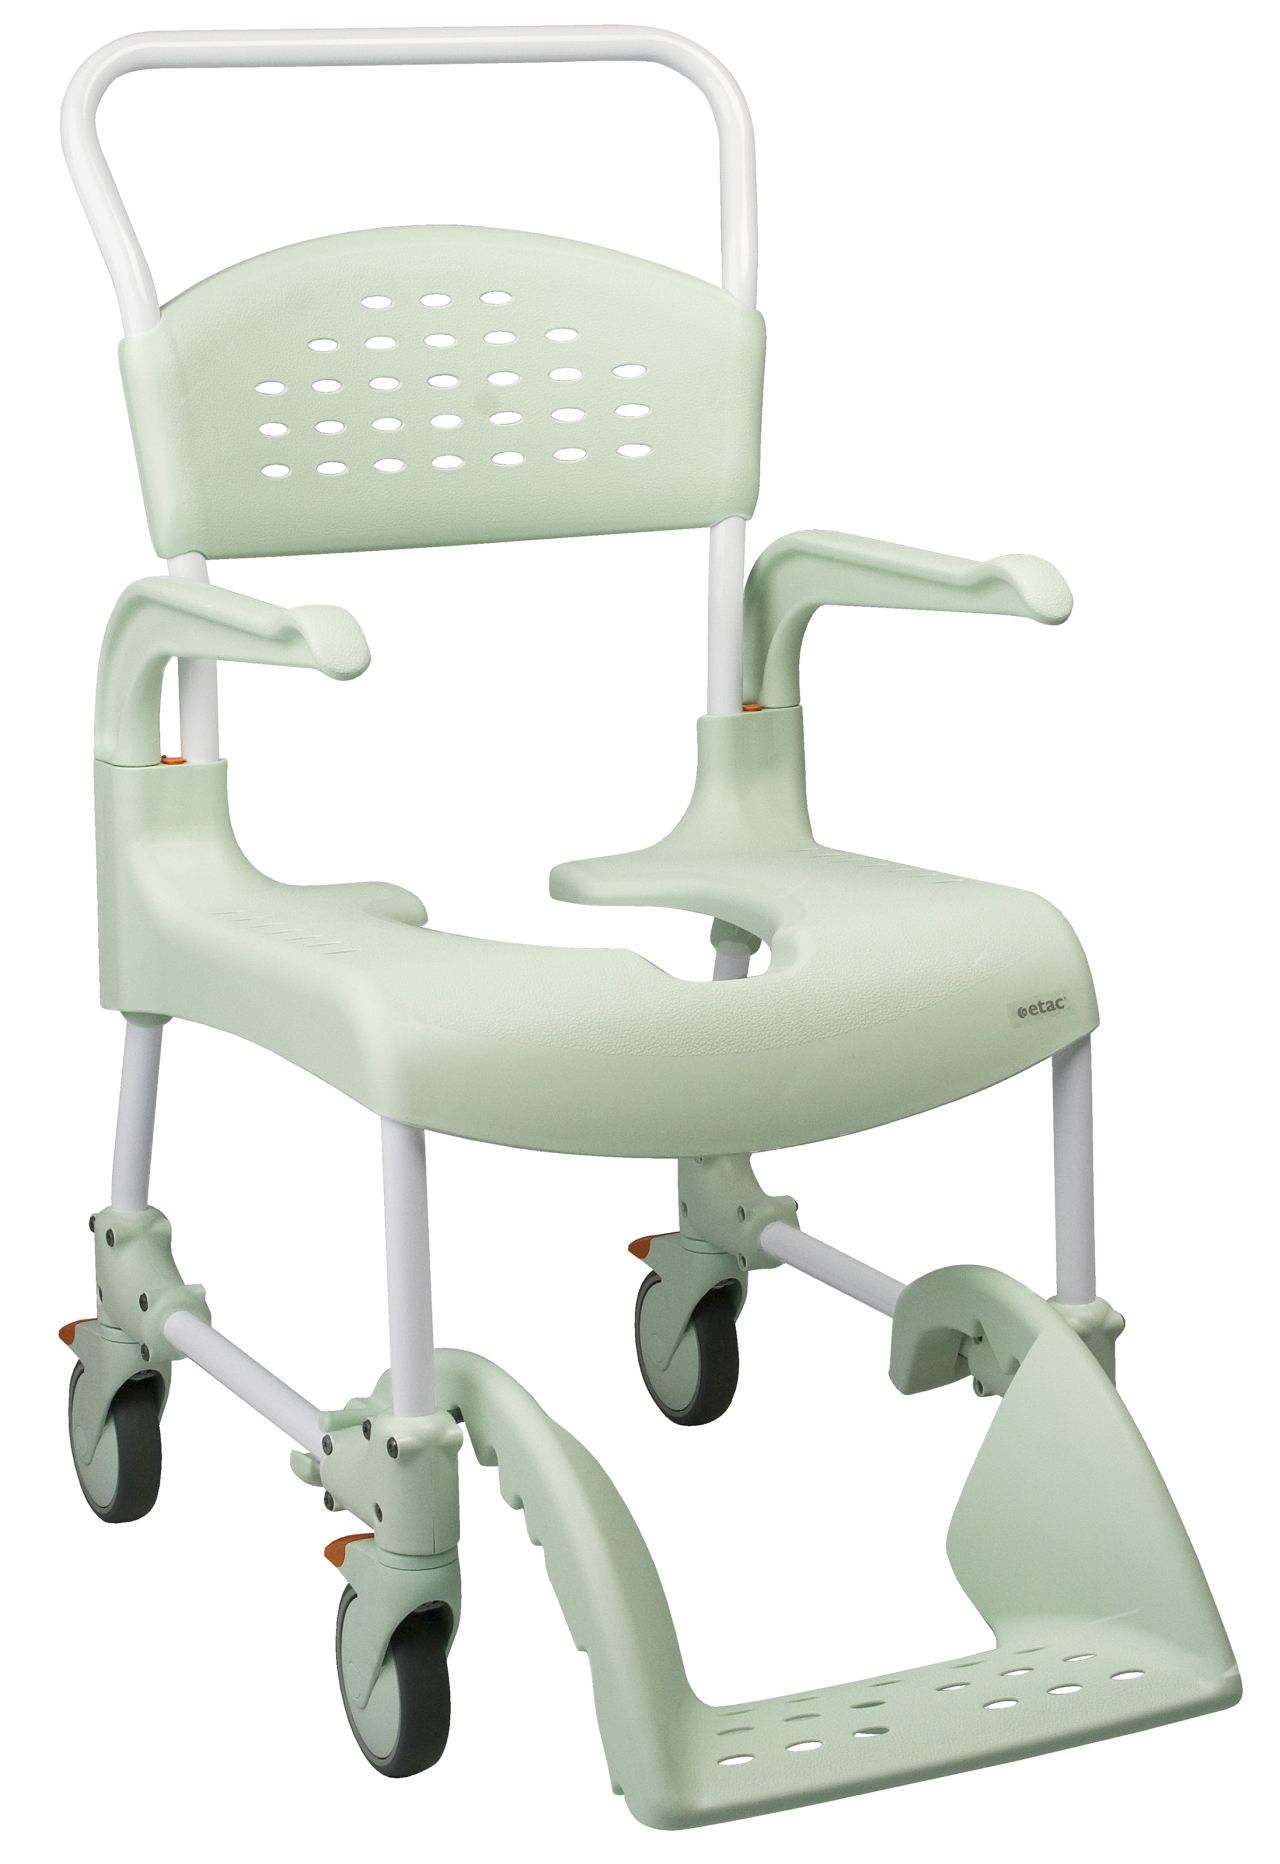 Etac Clean shower commode chair - old version